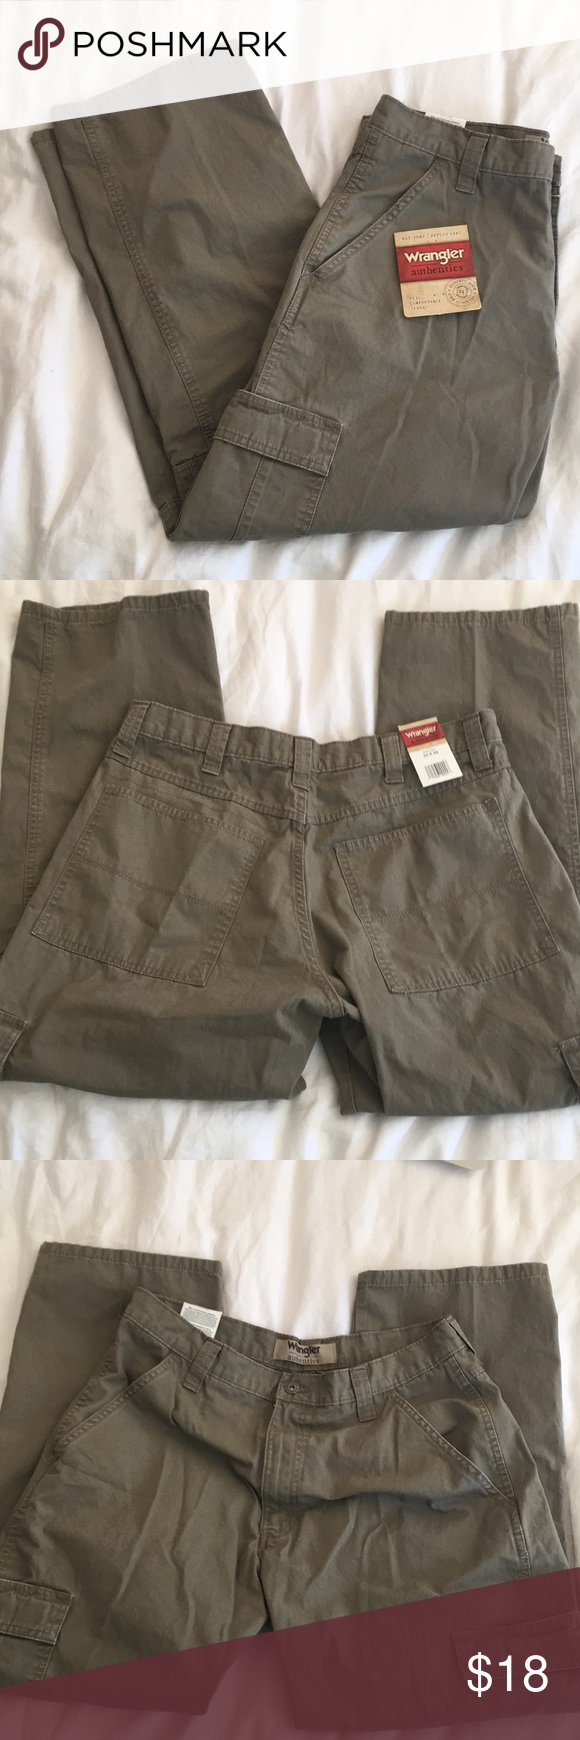 493dfbf76b19e8 NWT Wrangler Authentics class twill cargo pant Wrangler Authentics Men's  Classic twill Relaxed fit cargo pant Military Khaki Ripstop 34x29 Brand new  with ...